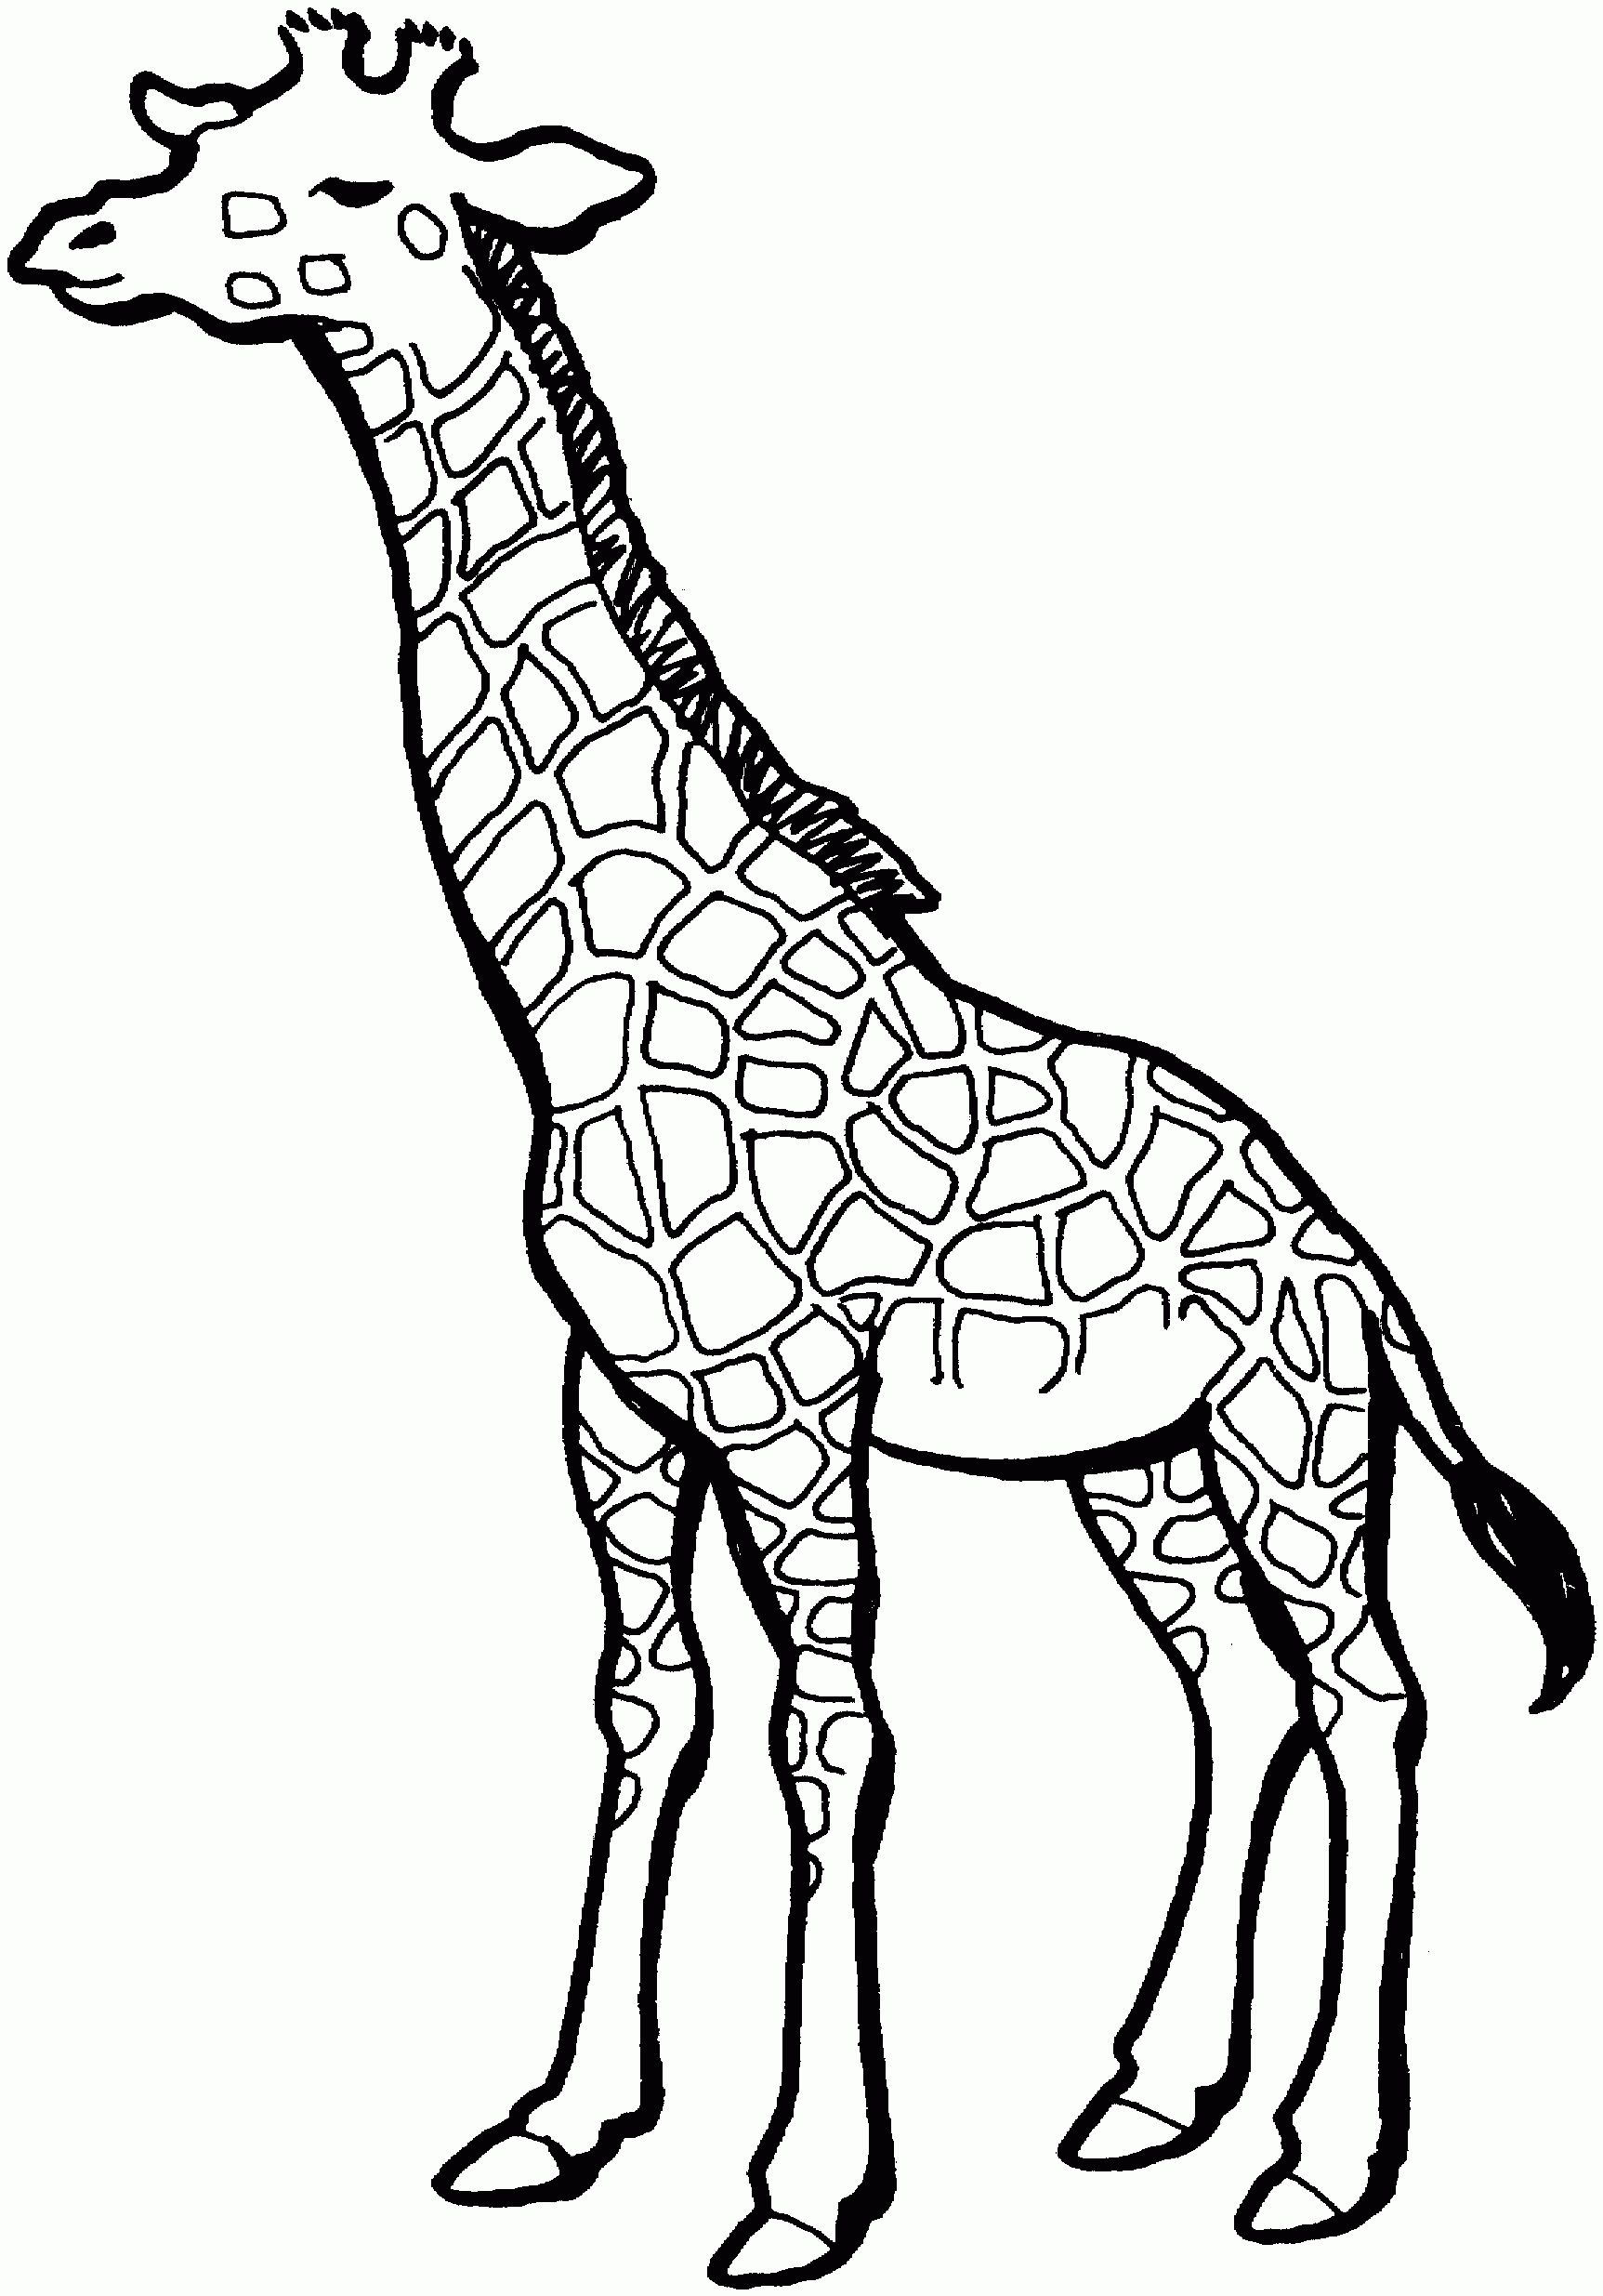 Collection of free download. Giraffe clipart outline